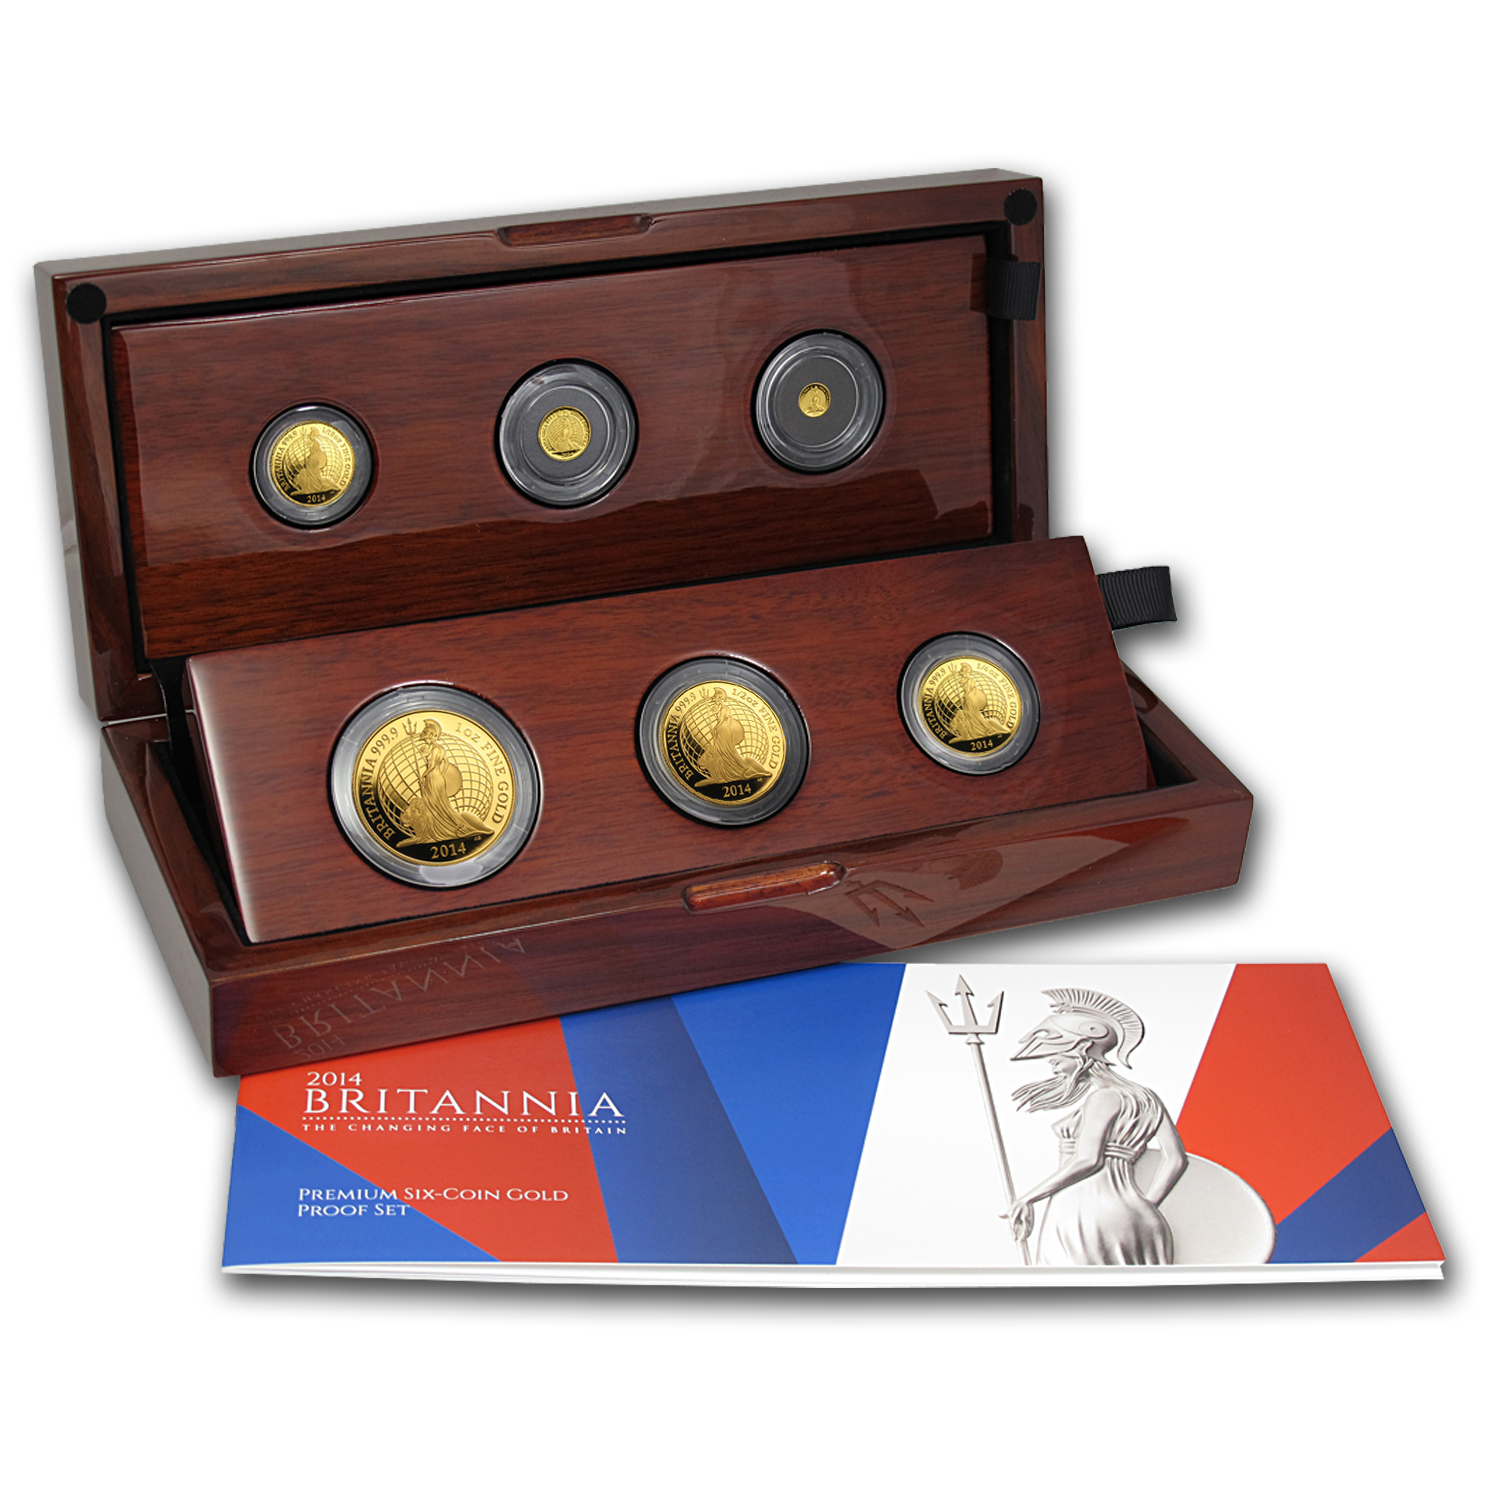 2014 6-Coin Gold Britannia Premium Proof Set (w/Box & COA)